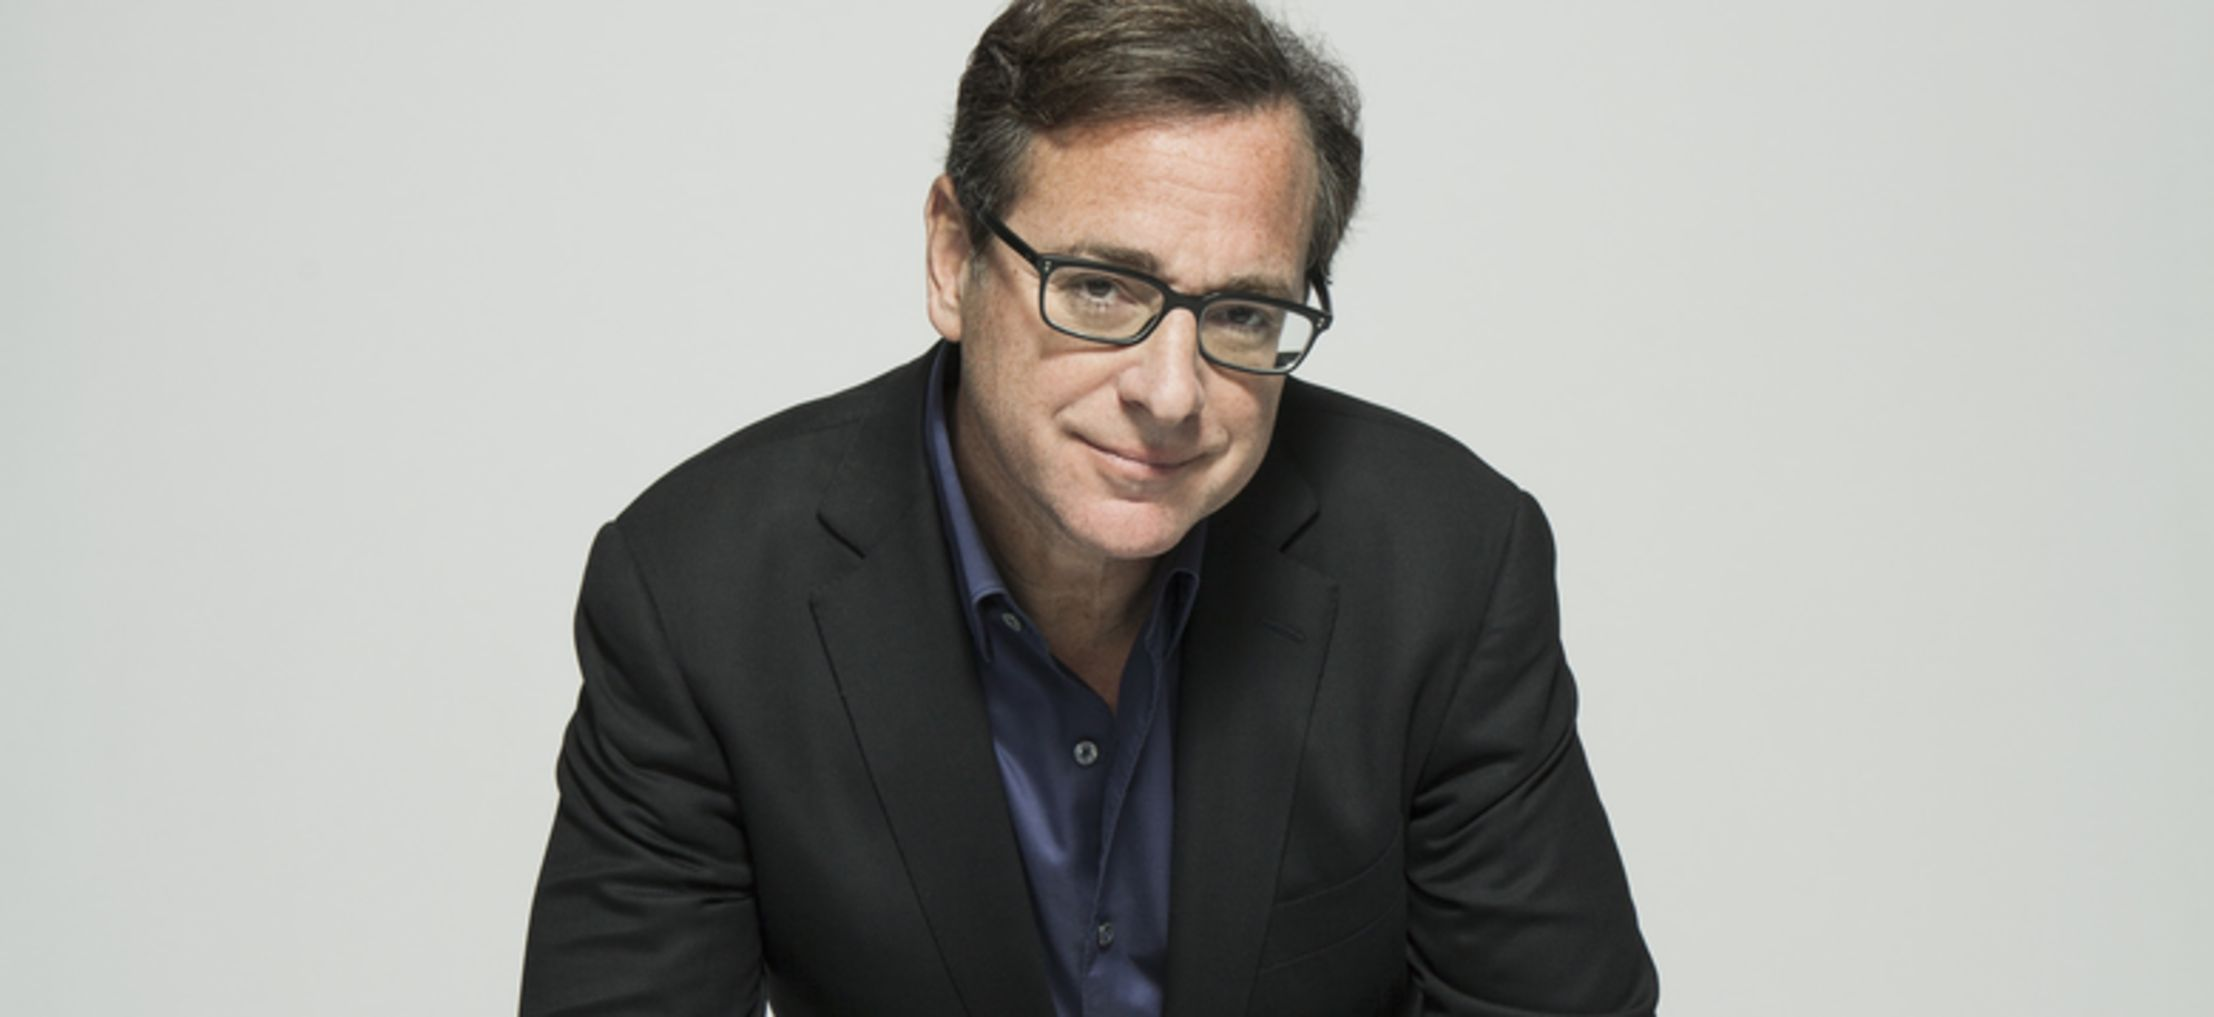 bob-saget-s-height-weight-age-body-measurements-4